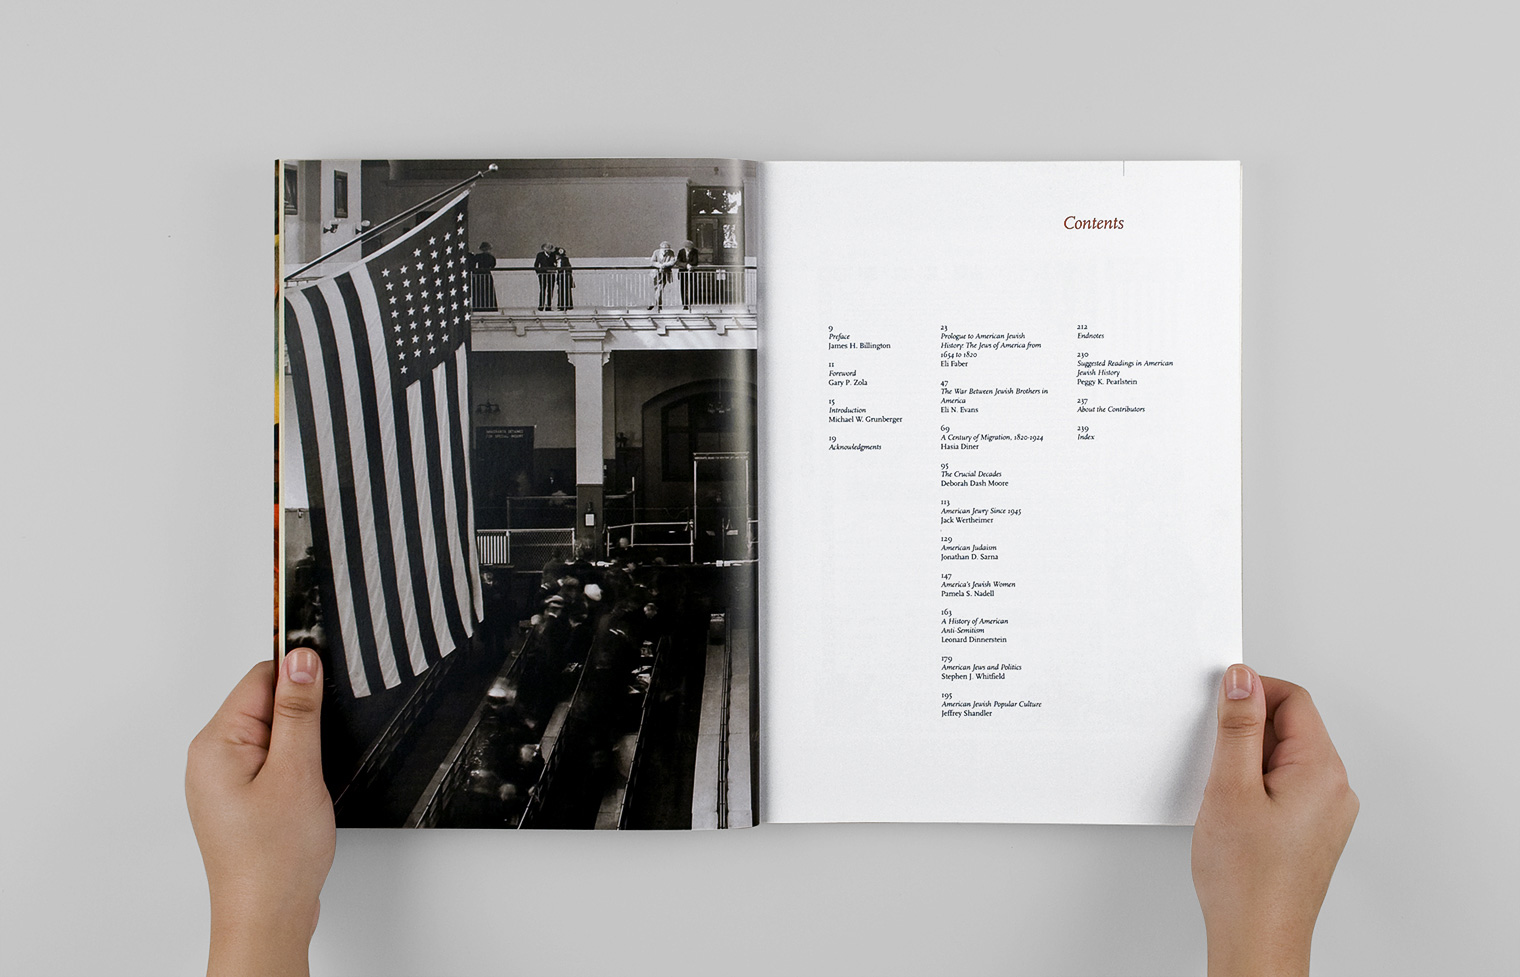 The contents page faces a 1912 photograph of an Inspection Room on Ellis Island.